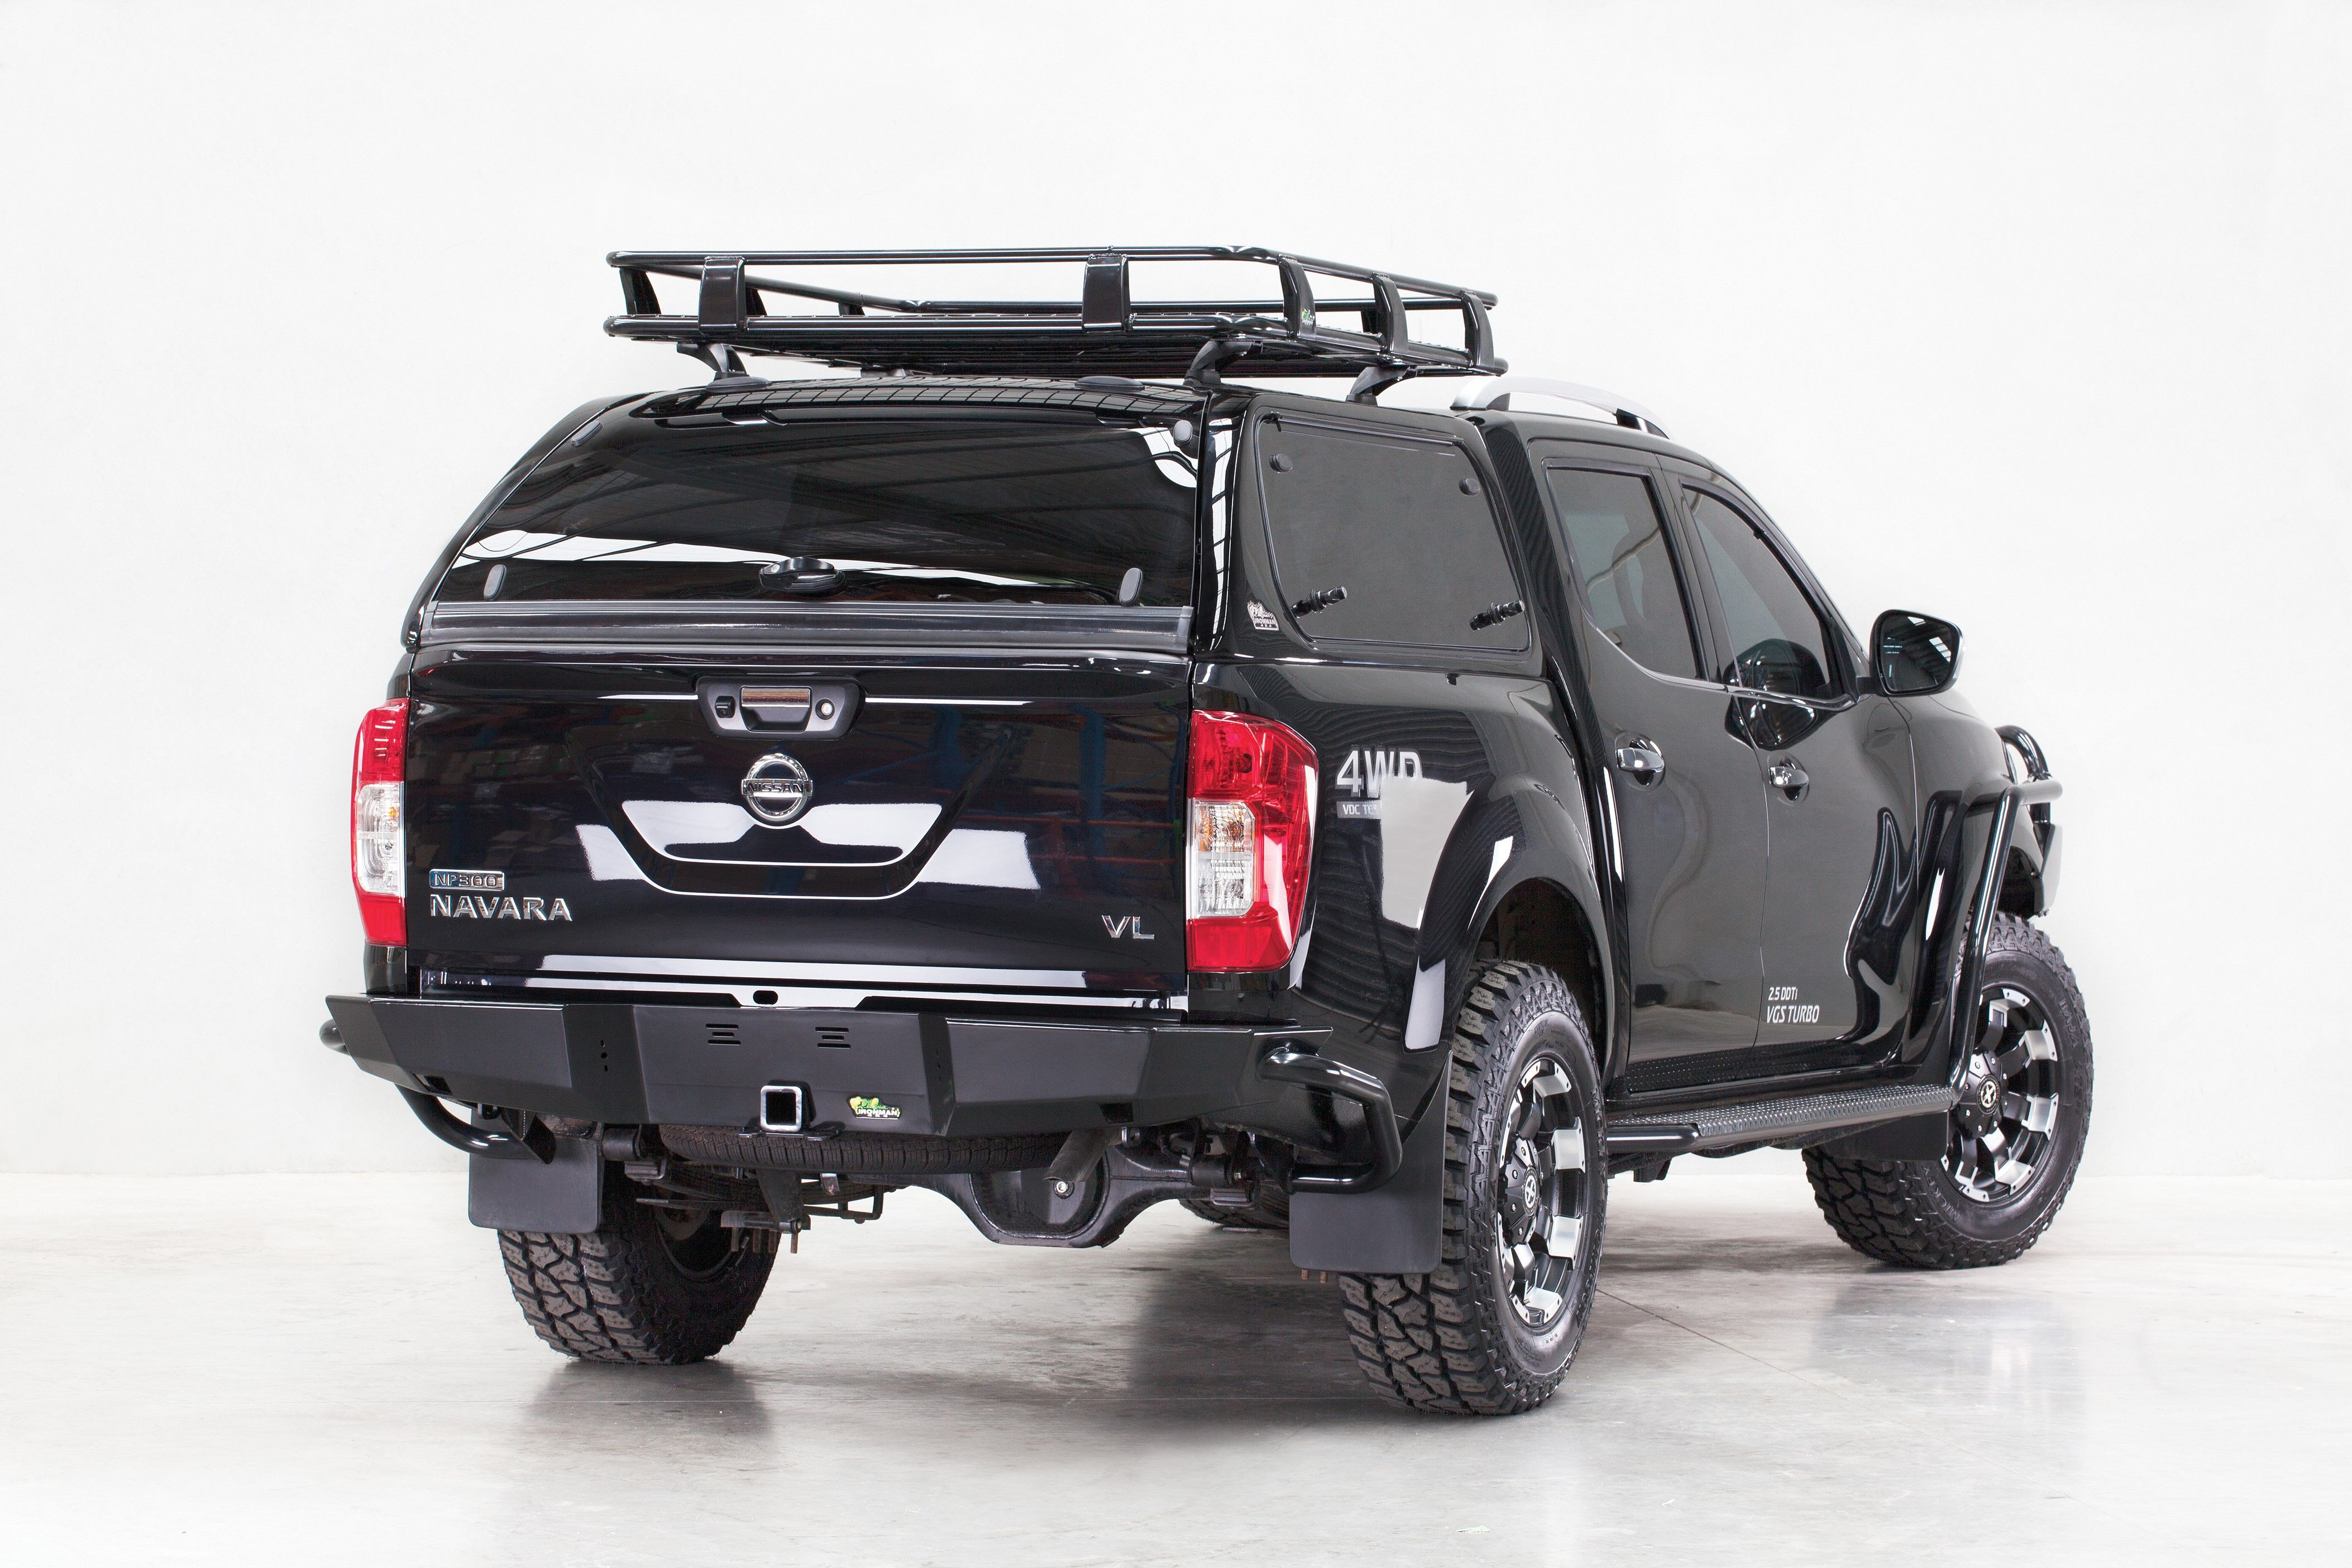 Nissan Trucks Nissan 4x4 Nissan Nismo Pickup Trucks Nissan Navara D40 Nissan Terrano Suv Vehicles Nissan Pathfinder Offroad & Pin by Antonio Marquez Jr on one day trucks | Pinterest | 4x4 ...